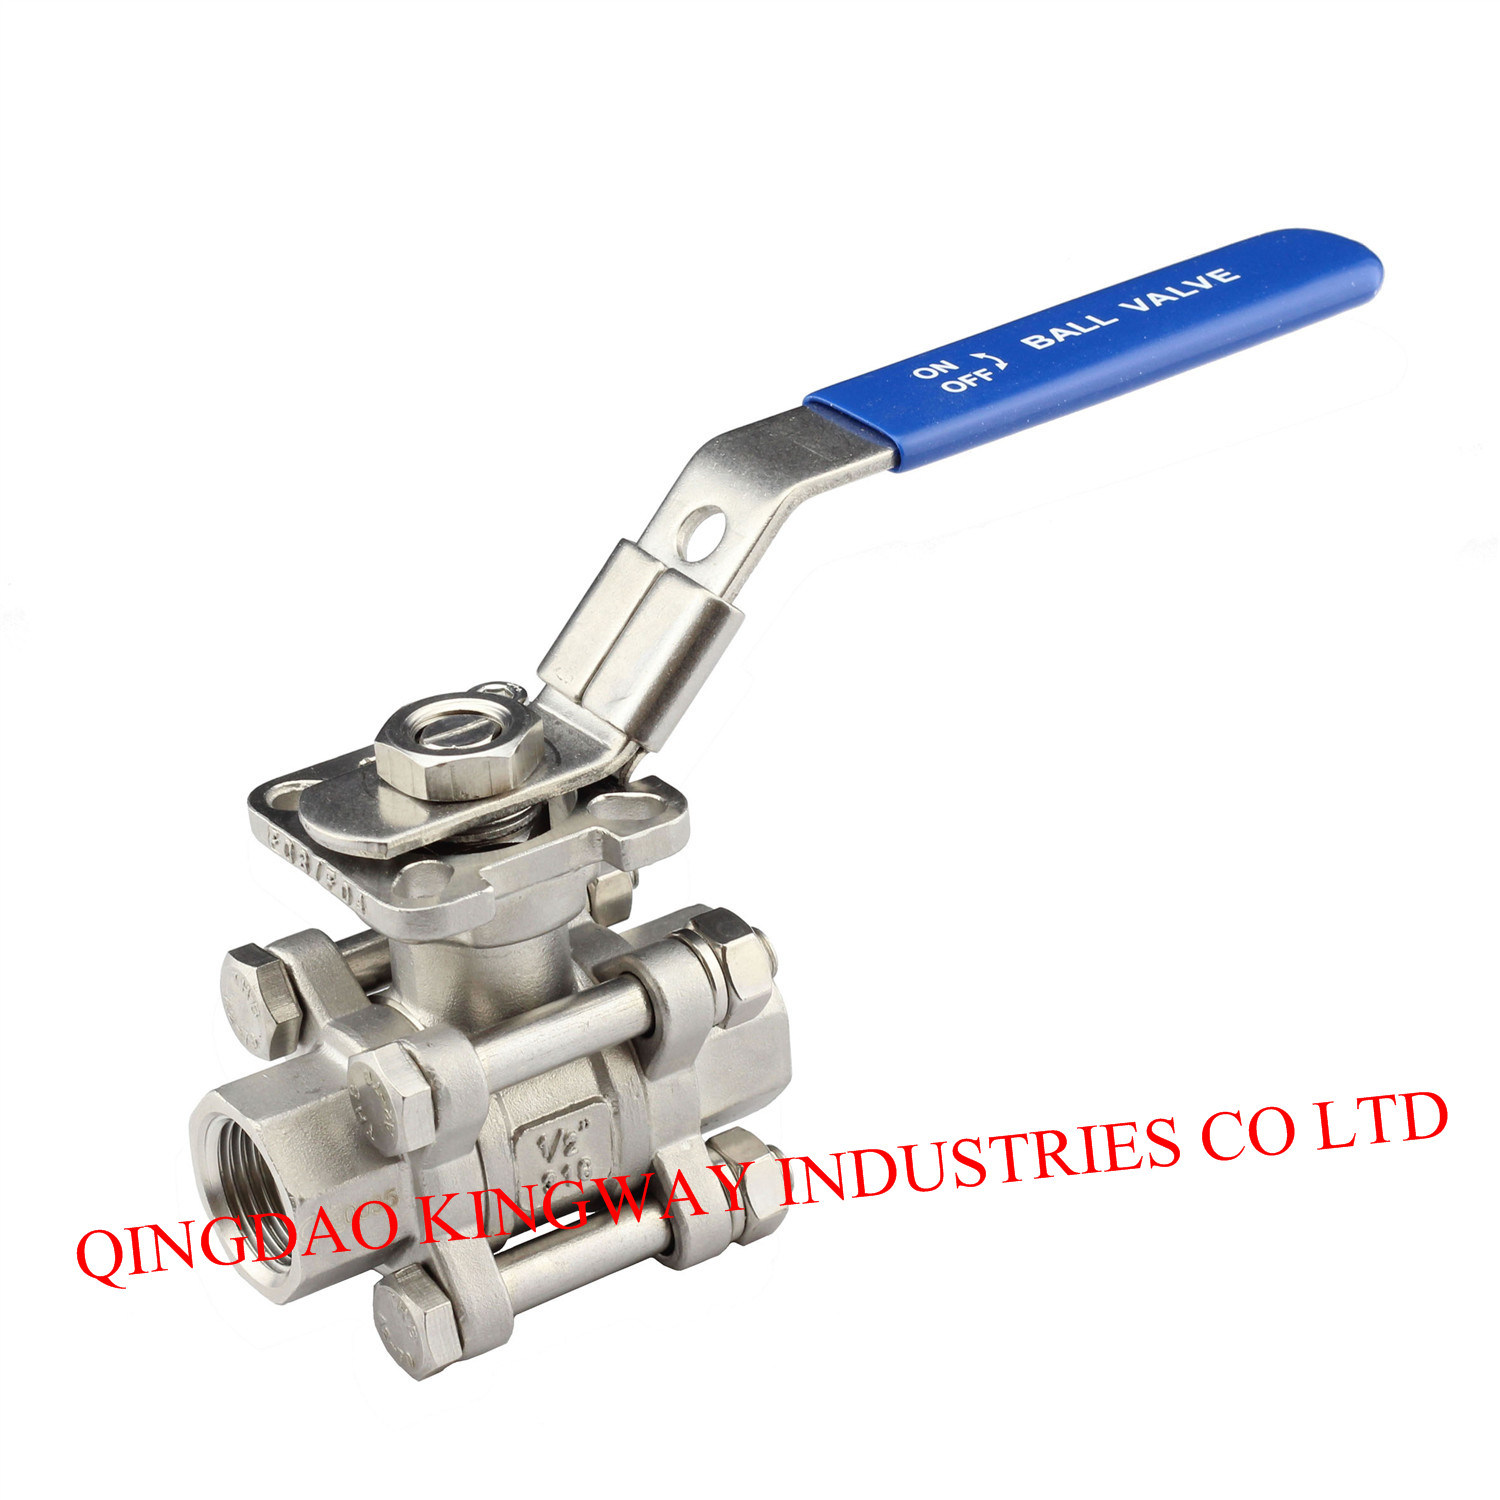 3-PC Screwed Ball Valve with Mounting Pad